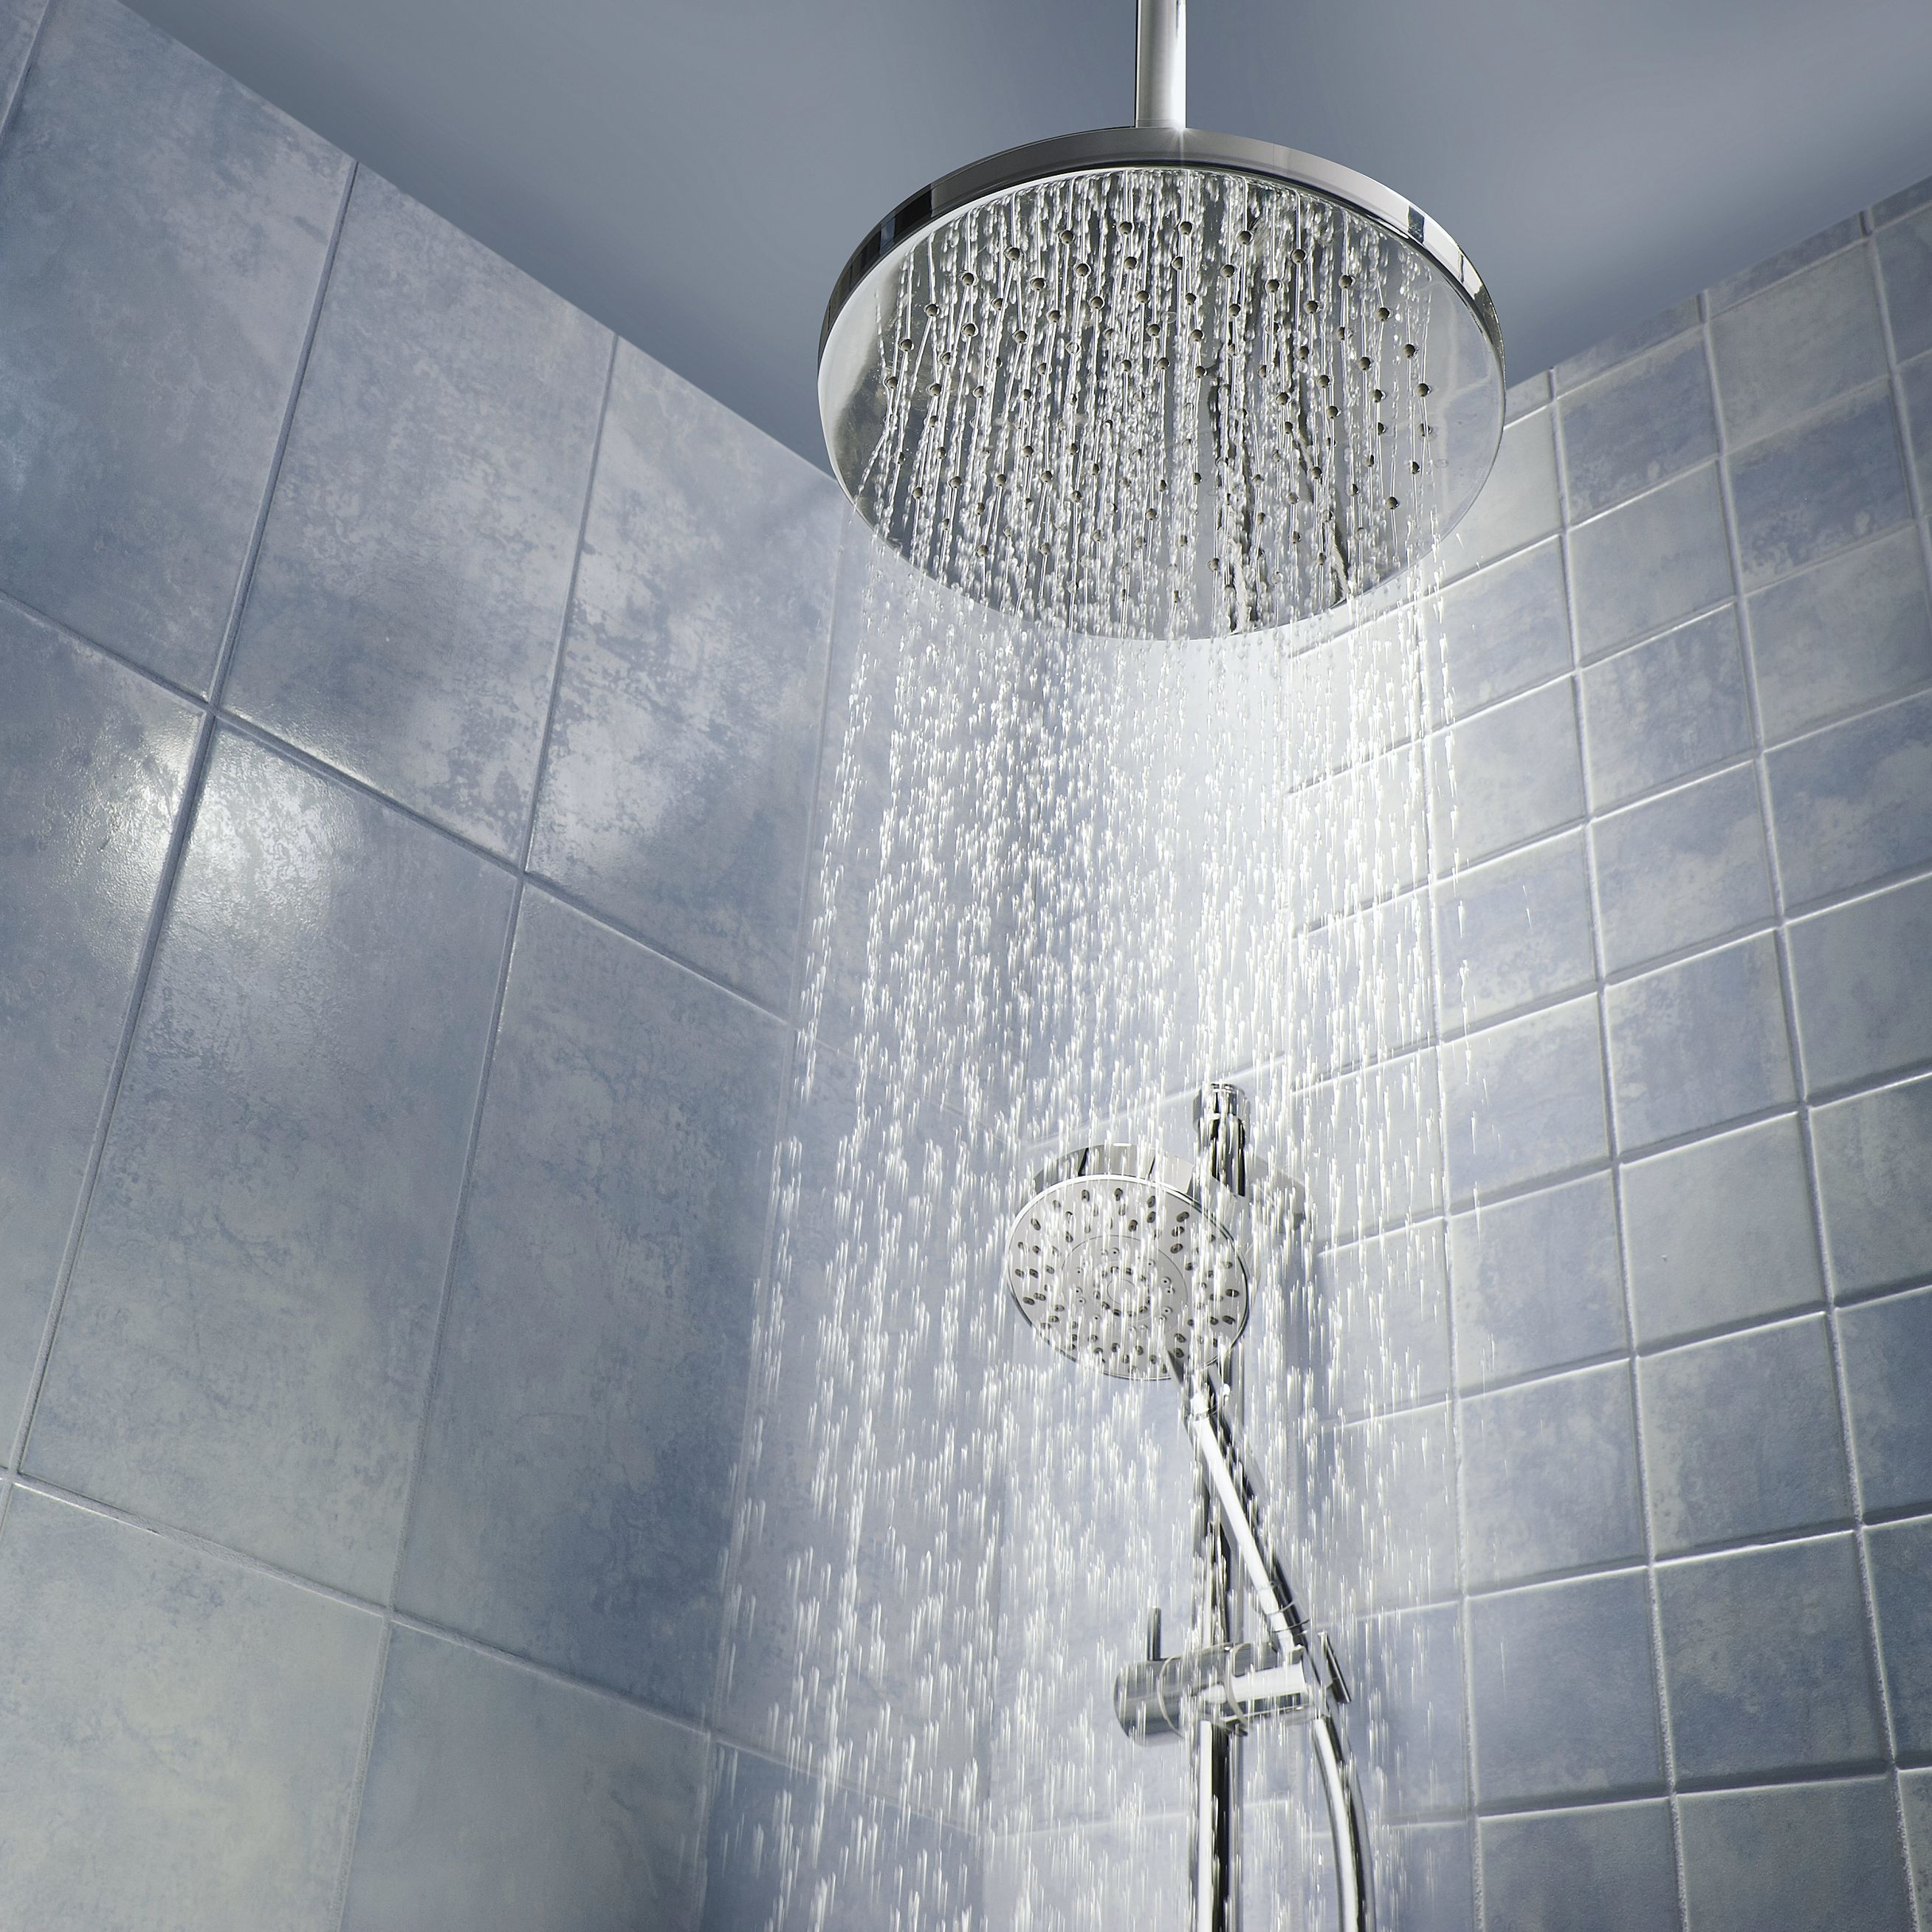 Shower head with running water